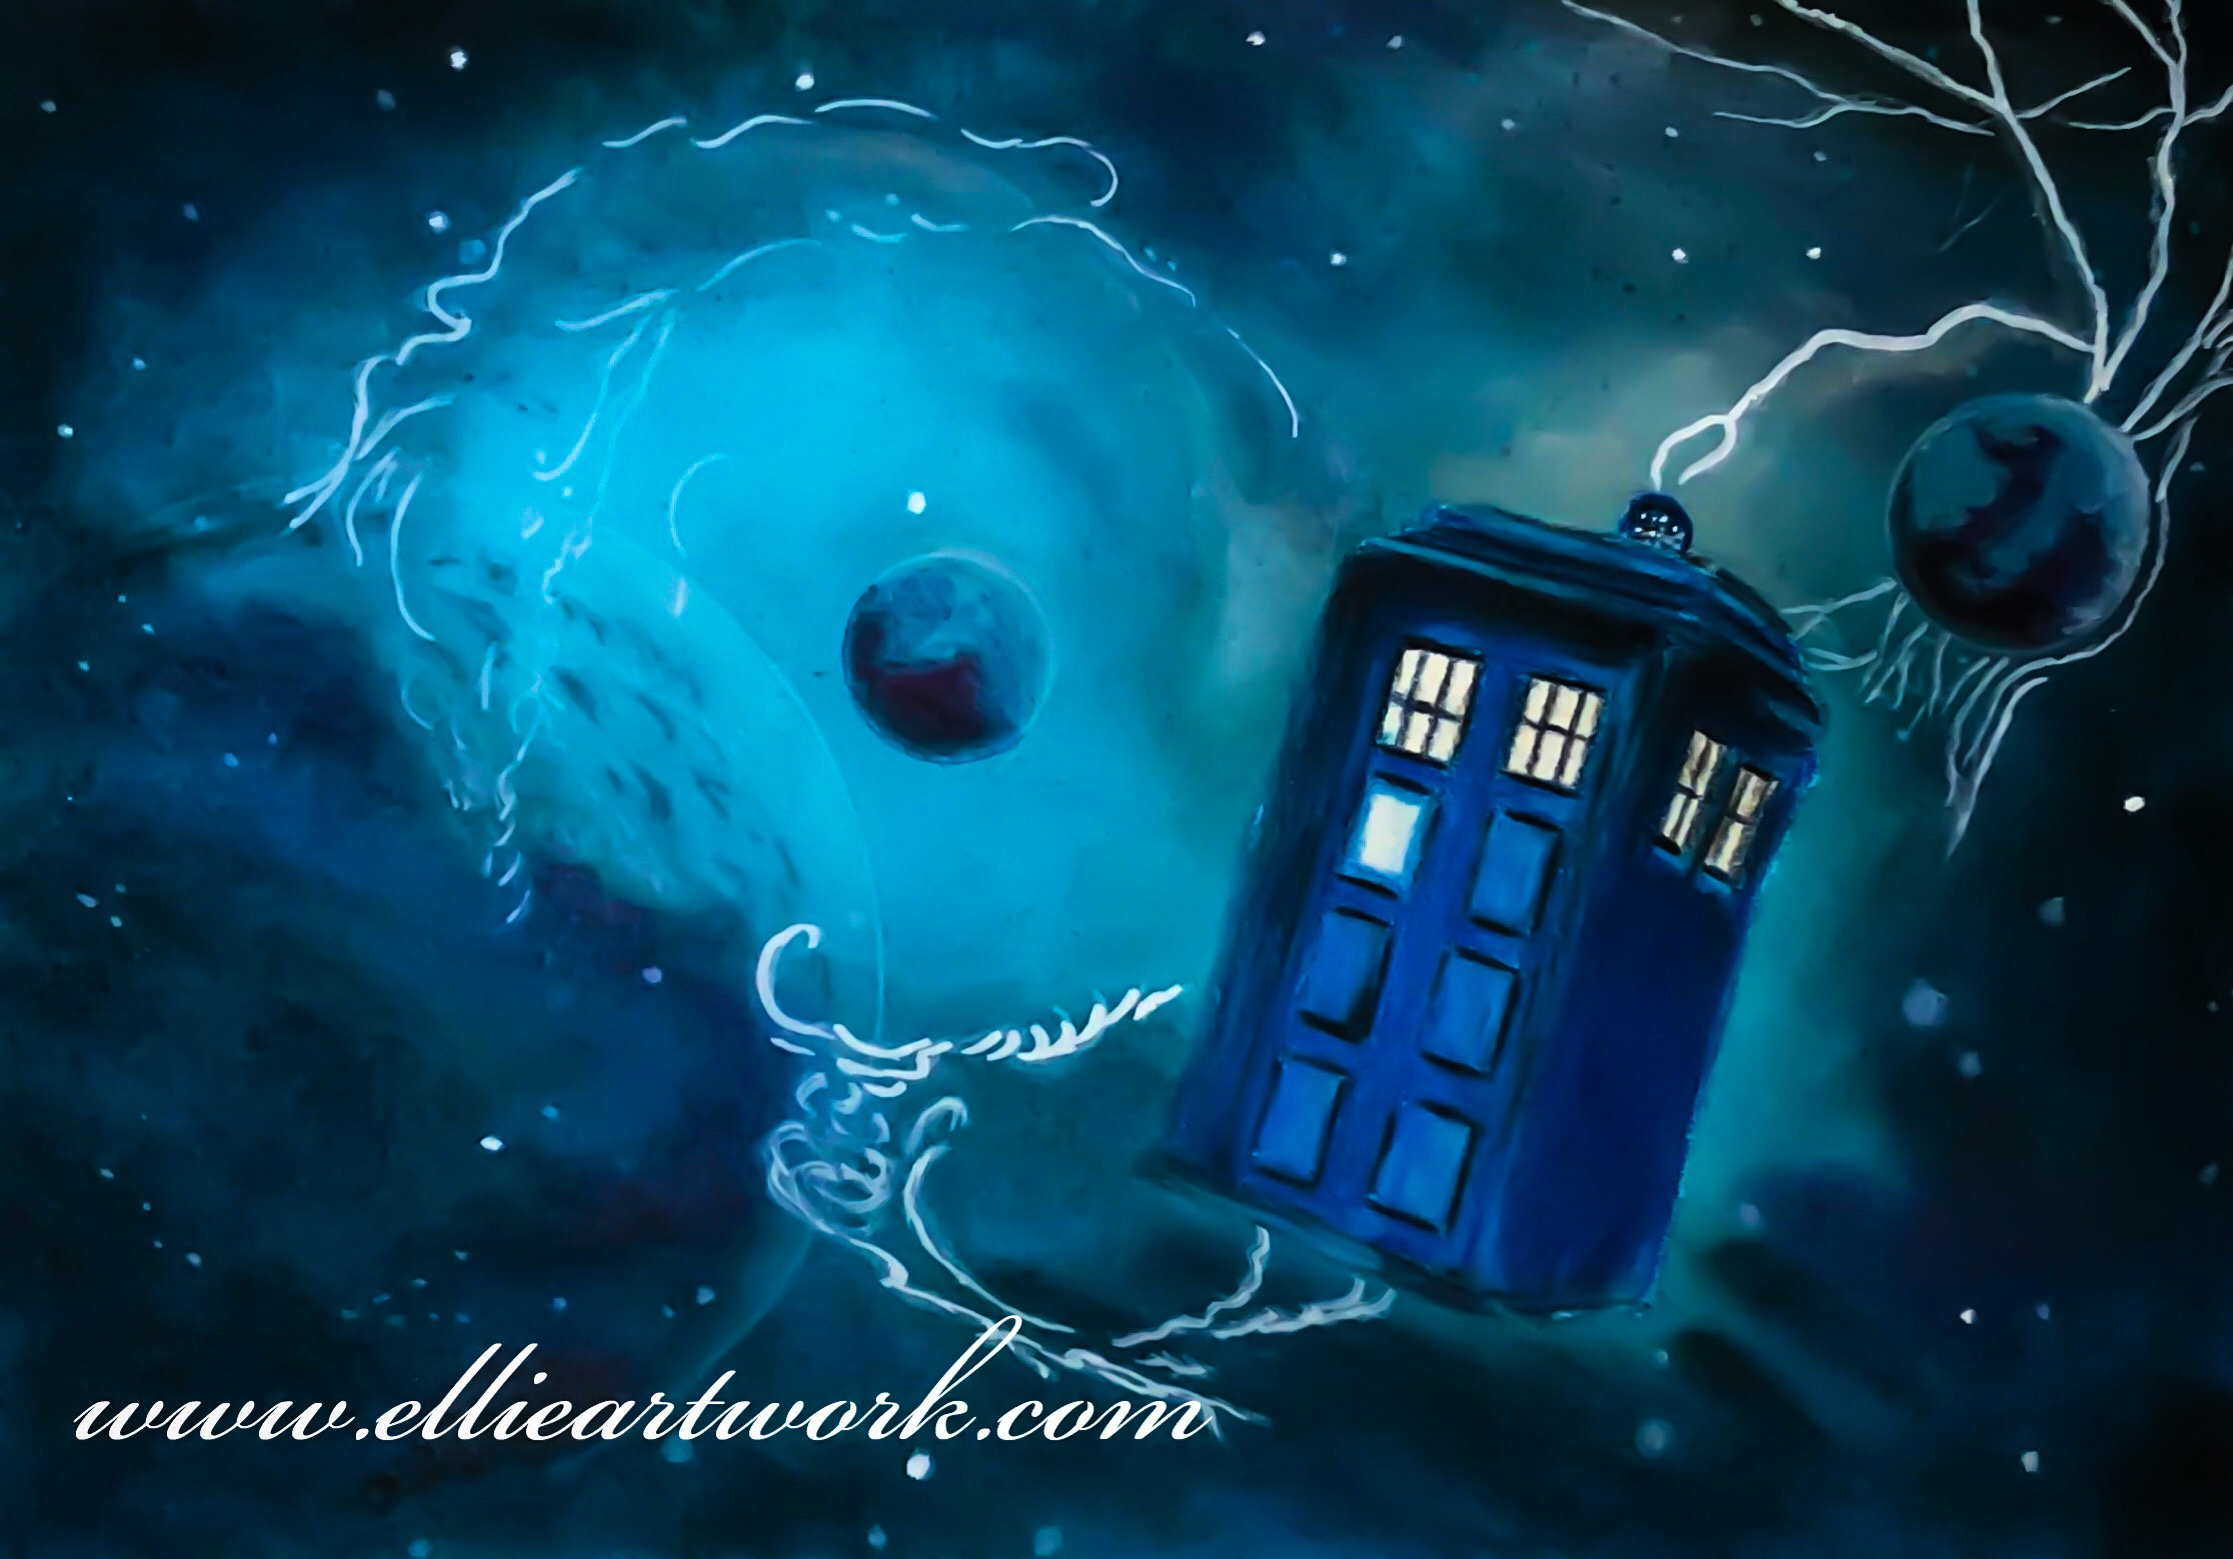 Timeless Dr Who Artwork